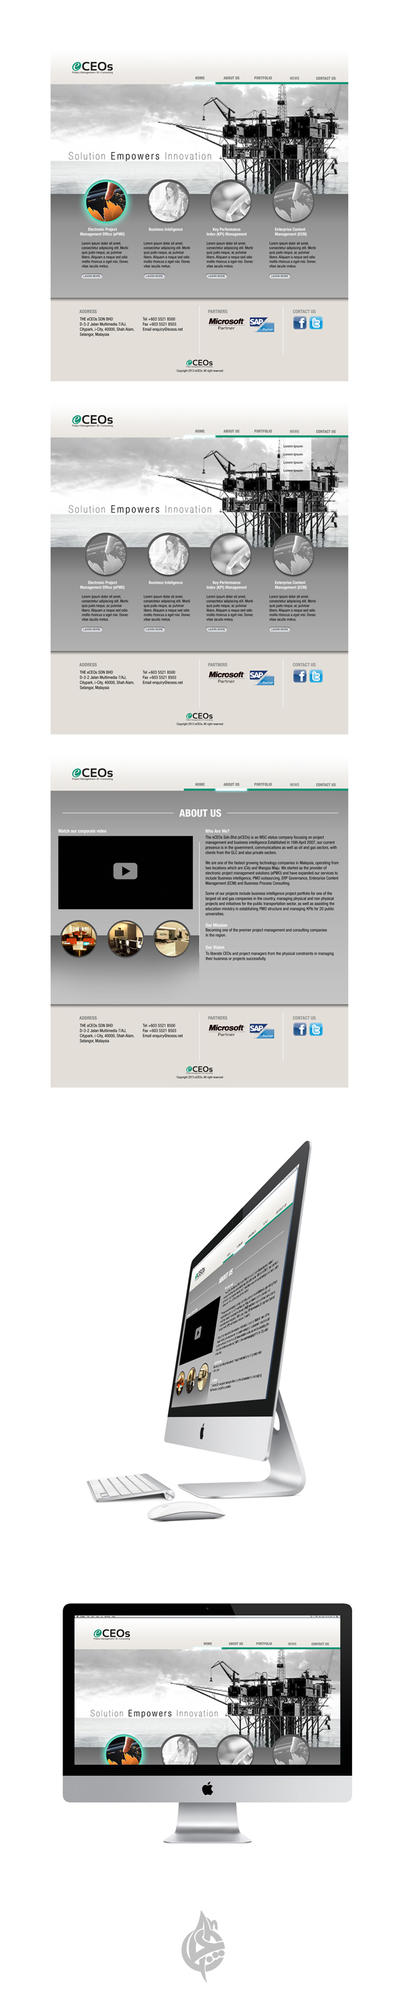 eCEOs Website Design 3 by AimanMD